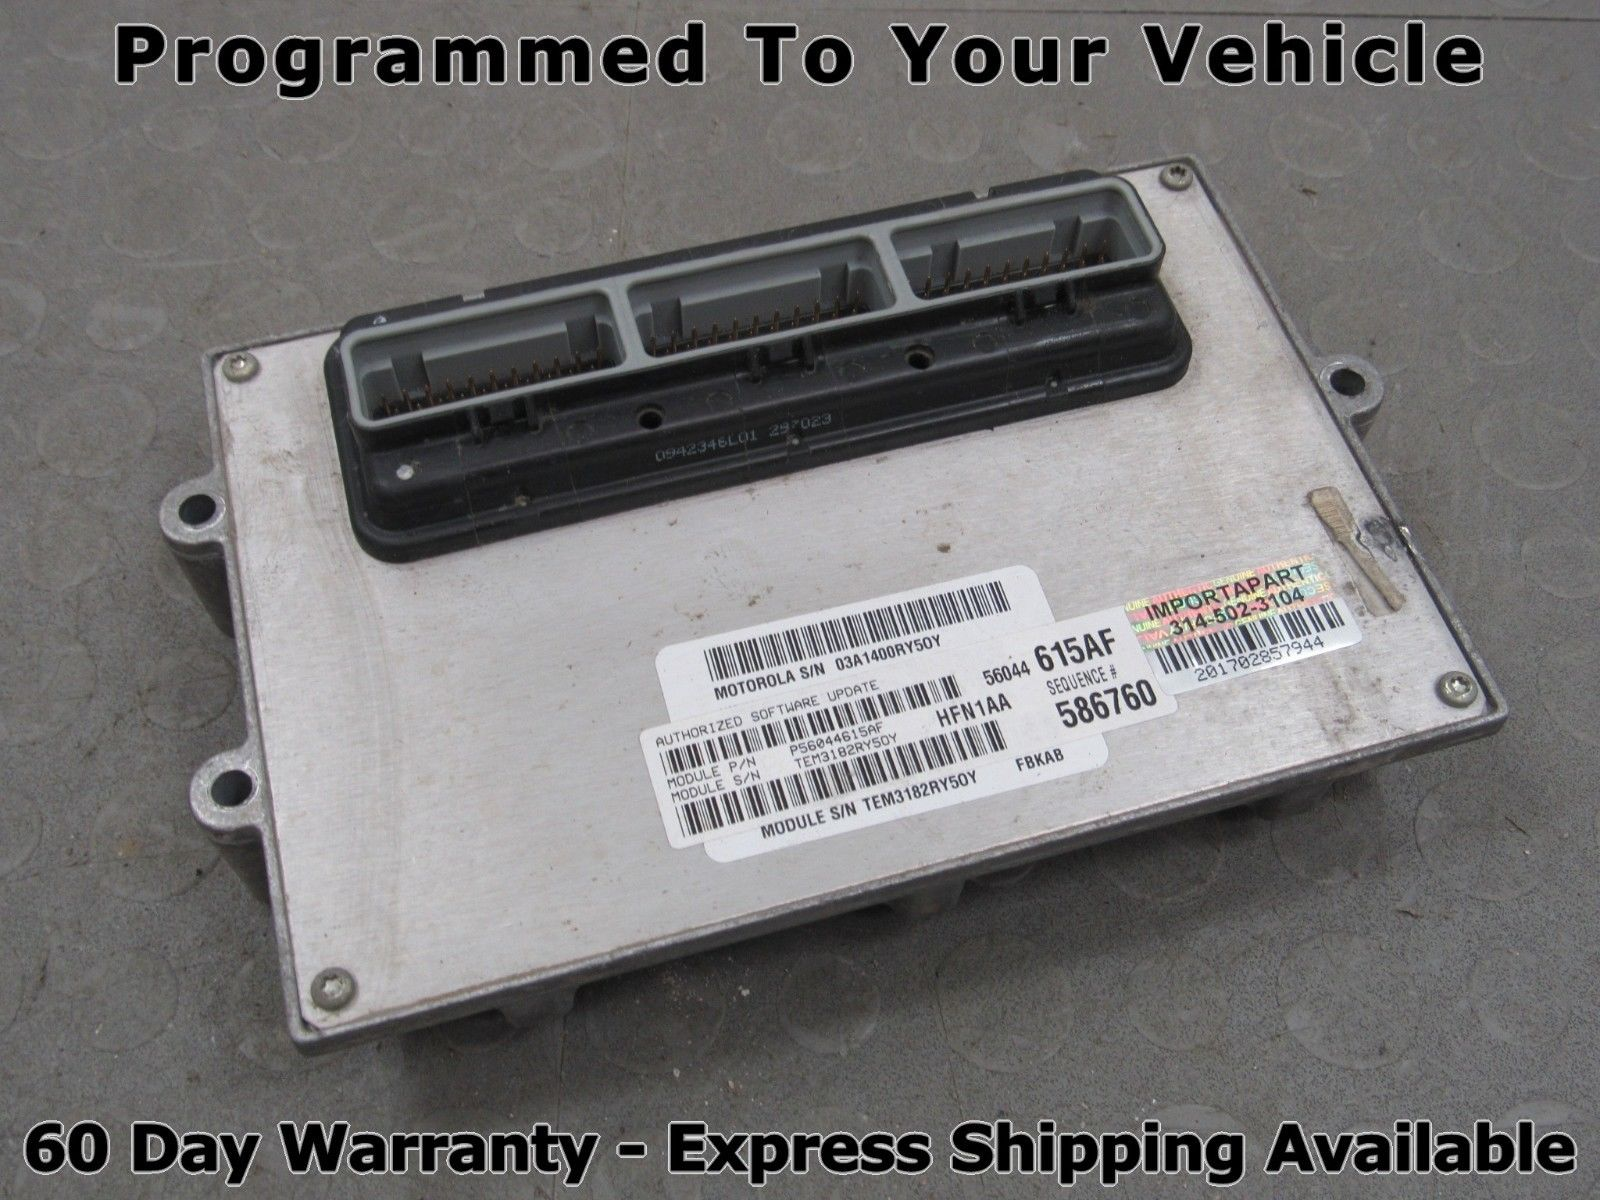 03 Jeep Liberty 2 4L MT 4Cyl PCM ECU ECM Engine Computer 56044615AF 615  PROG E